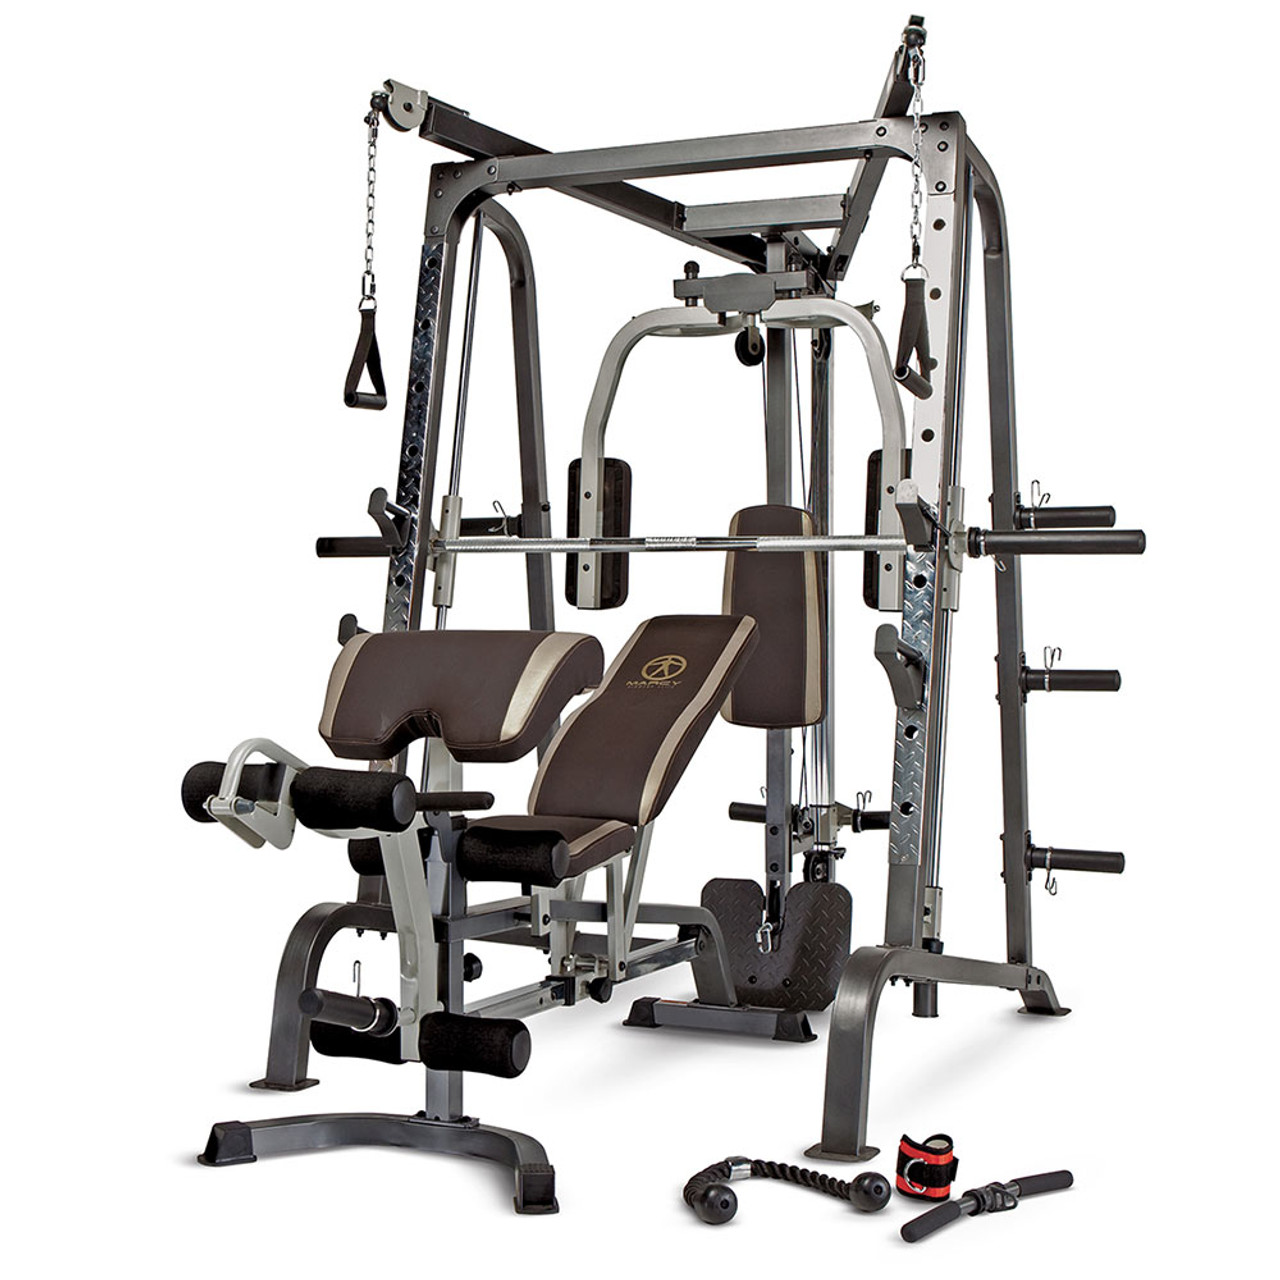 The best quality brand smith machine home gym md g marcy pro